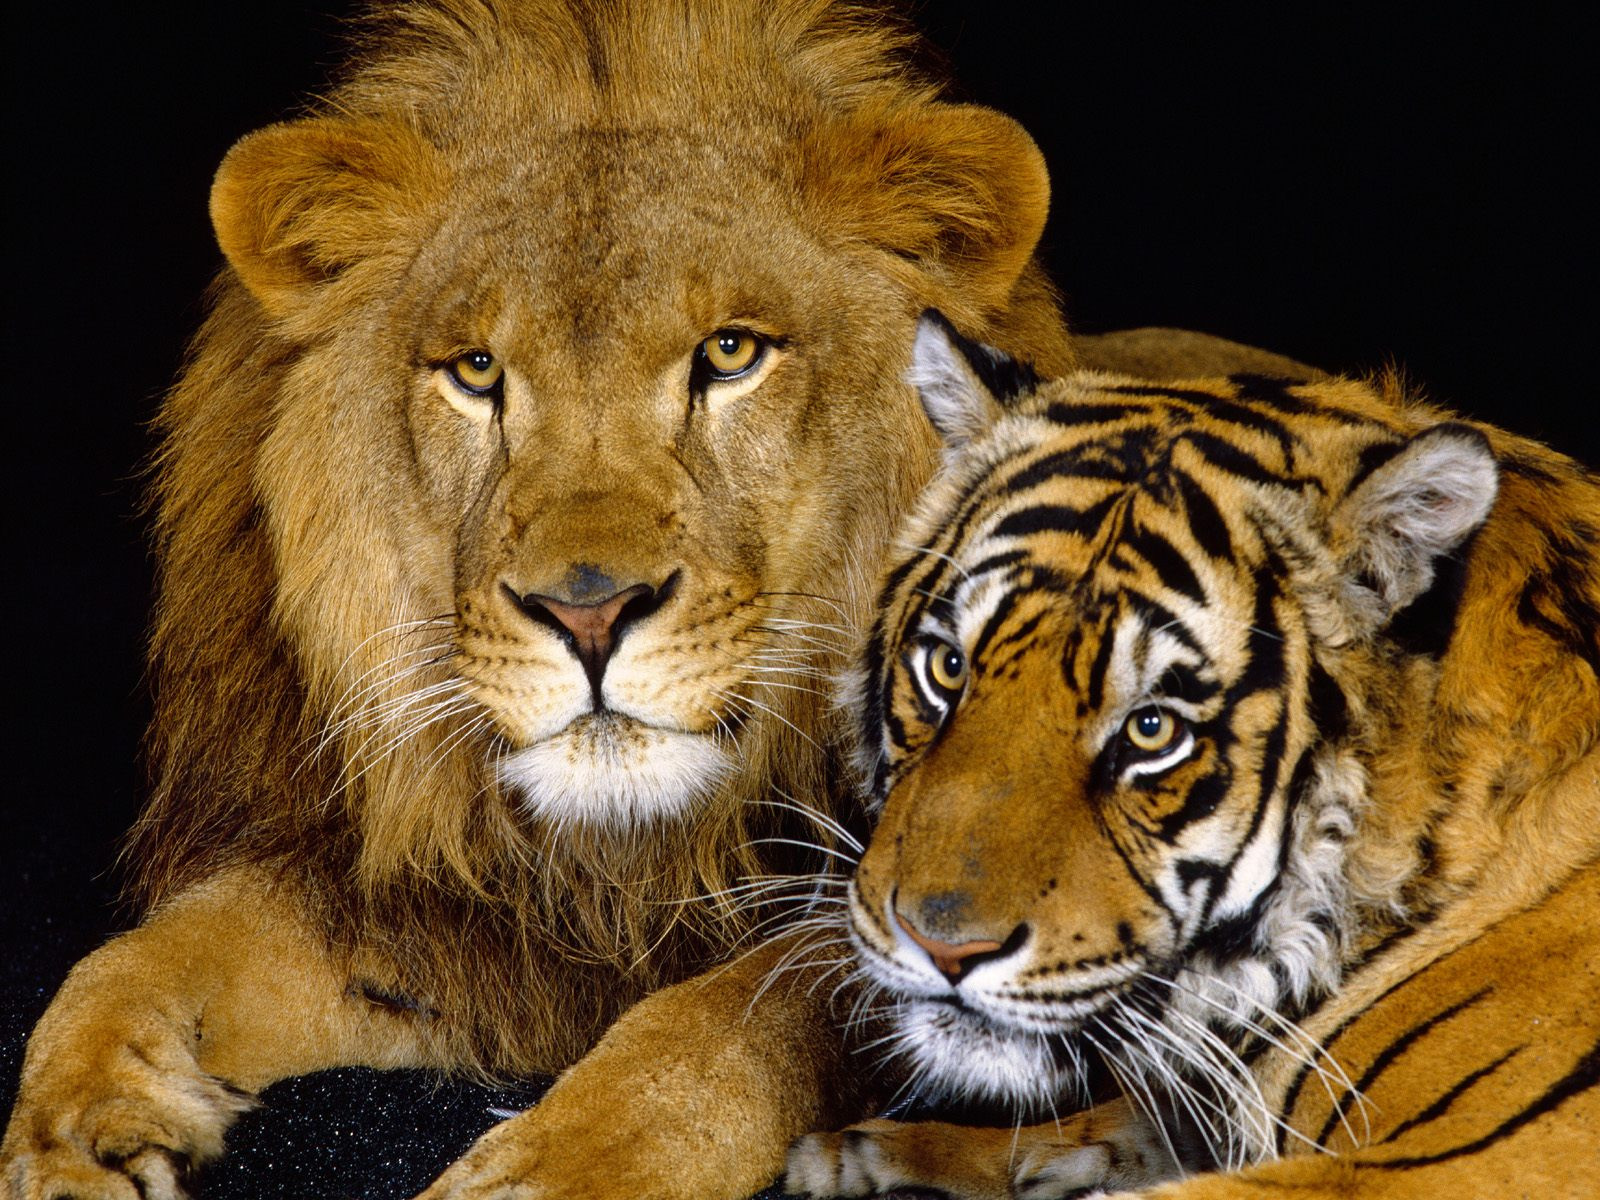 http://1.bp.blogspot.com/_2g_KsidpK6M/TPj9FFbT6xI/AAAAAAAAAJU/27L_QLBPD-8/s1600/ANIMAL+WALLPAPERS.jpg